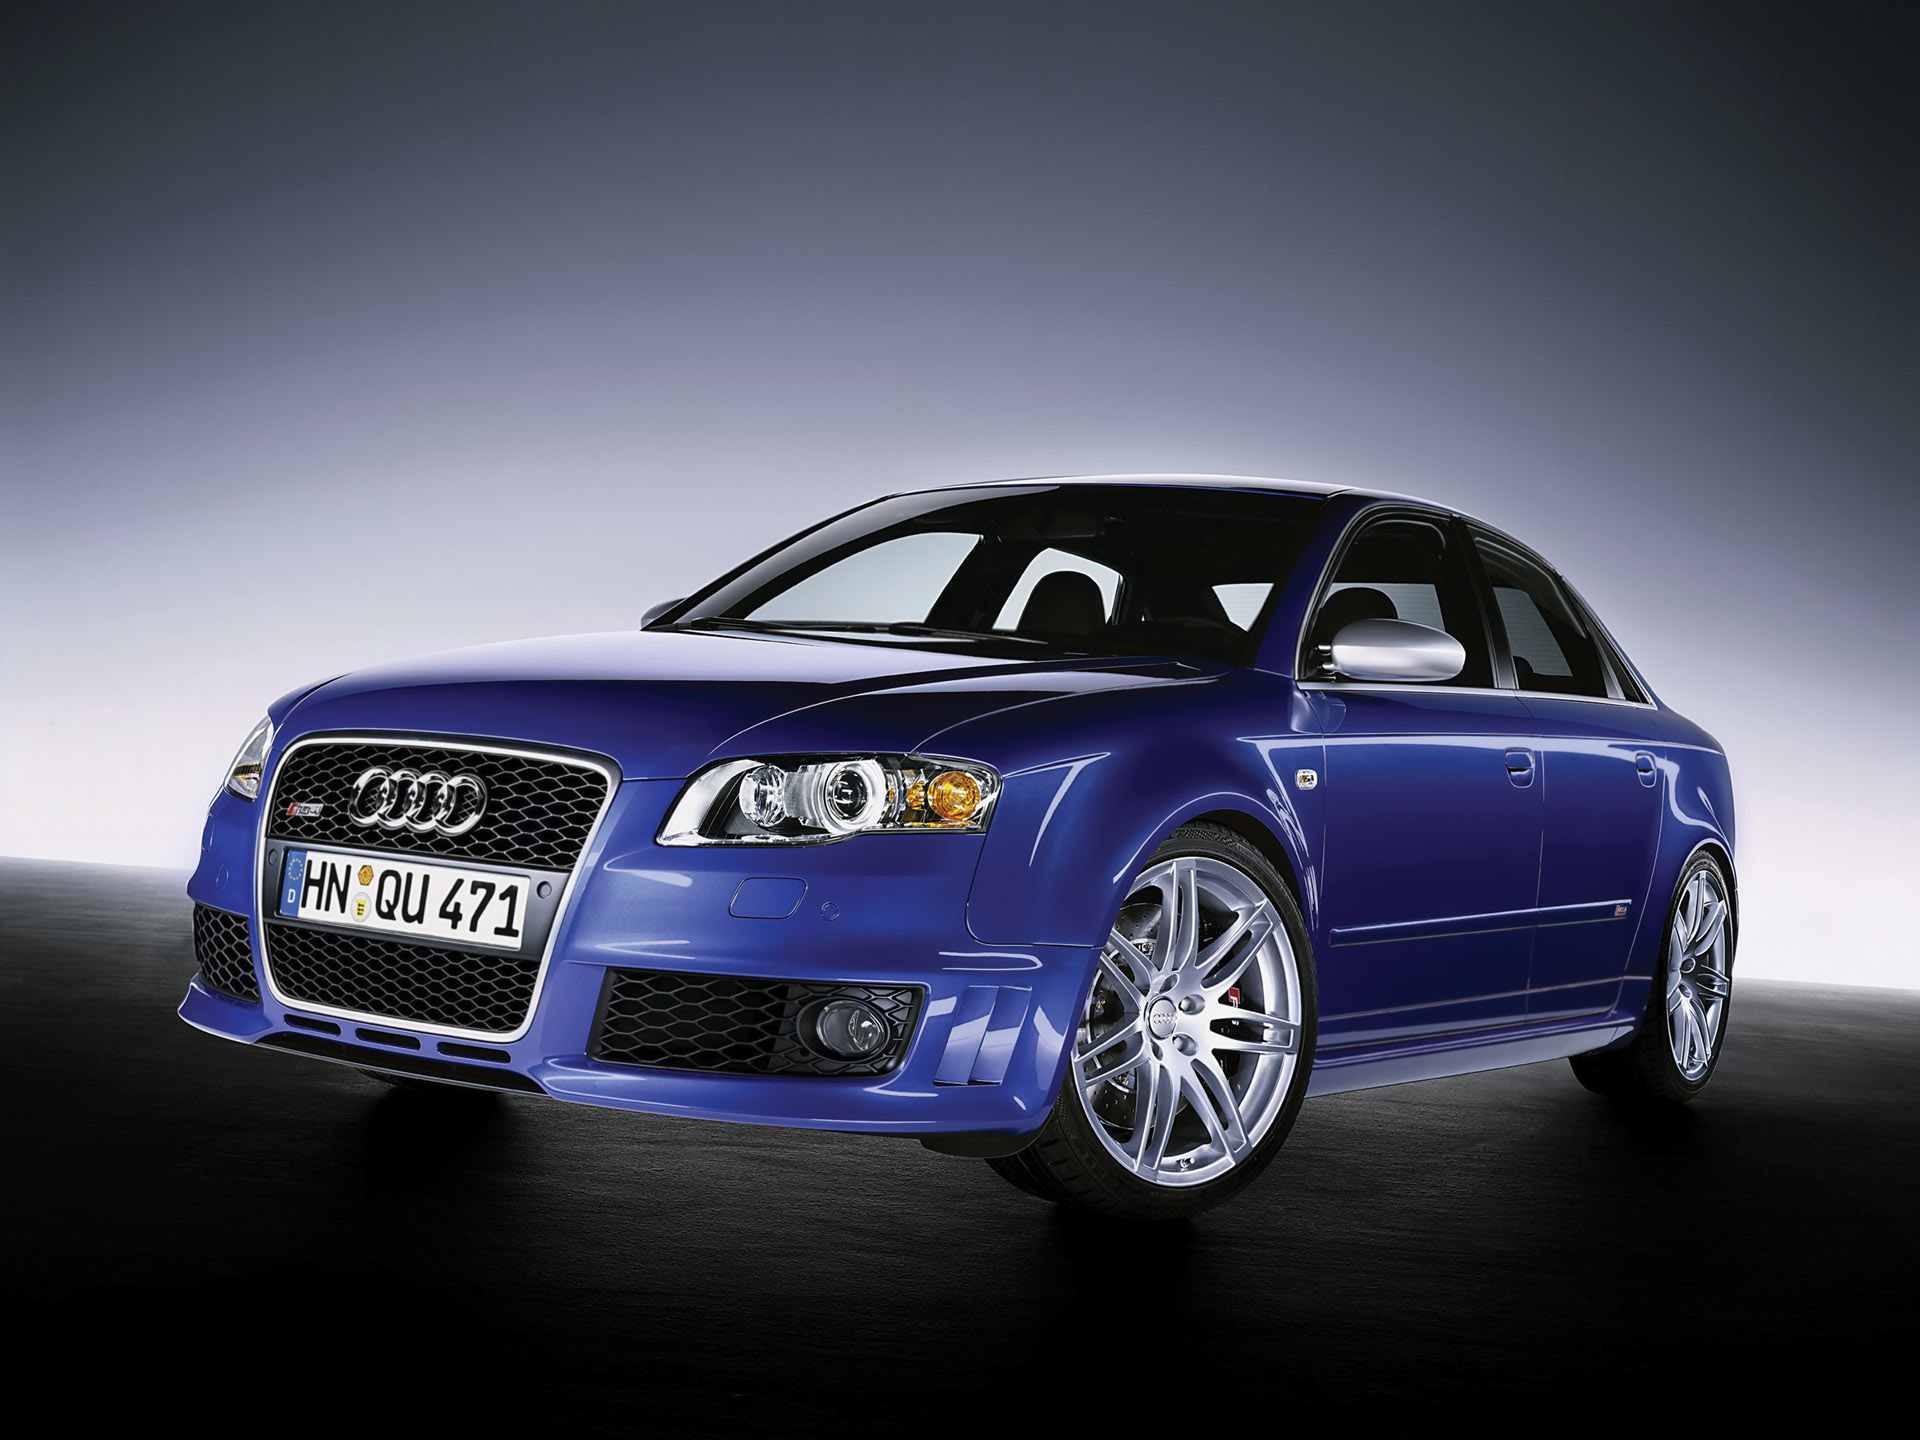 Audi RS4 HD Car and Auto Wallpaper for Samsung S5, Iphone I6, Android & Computer 9 Wallpaper